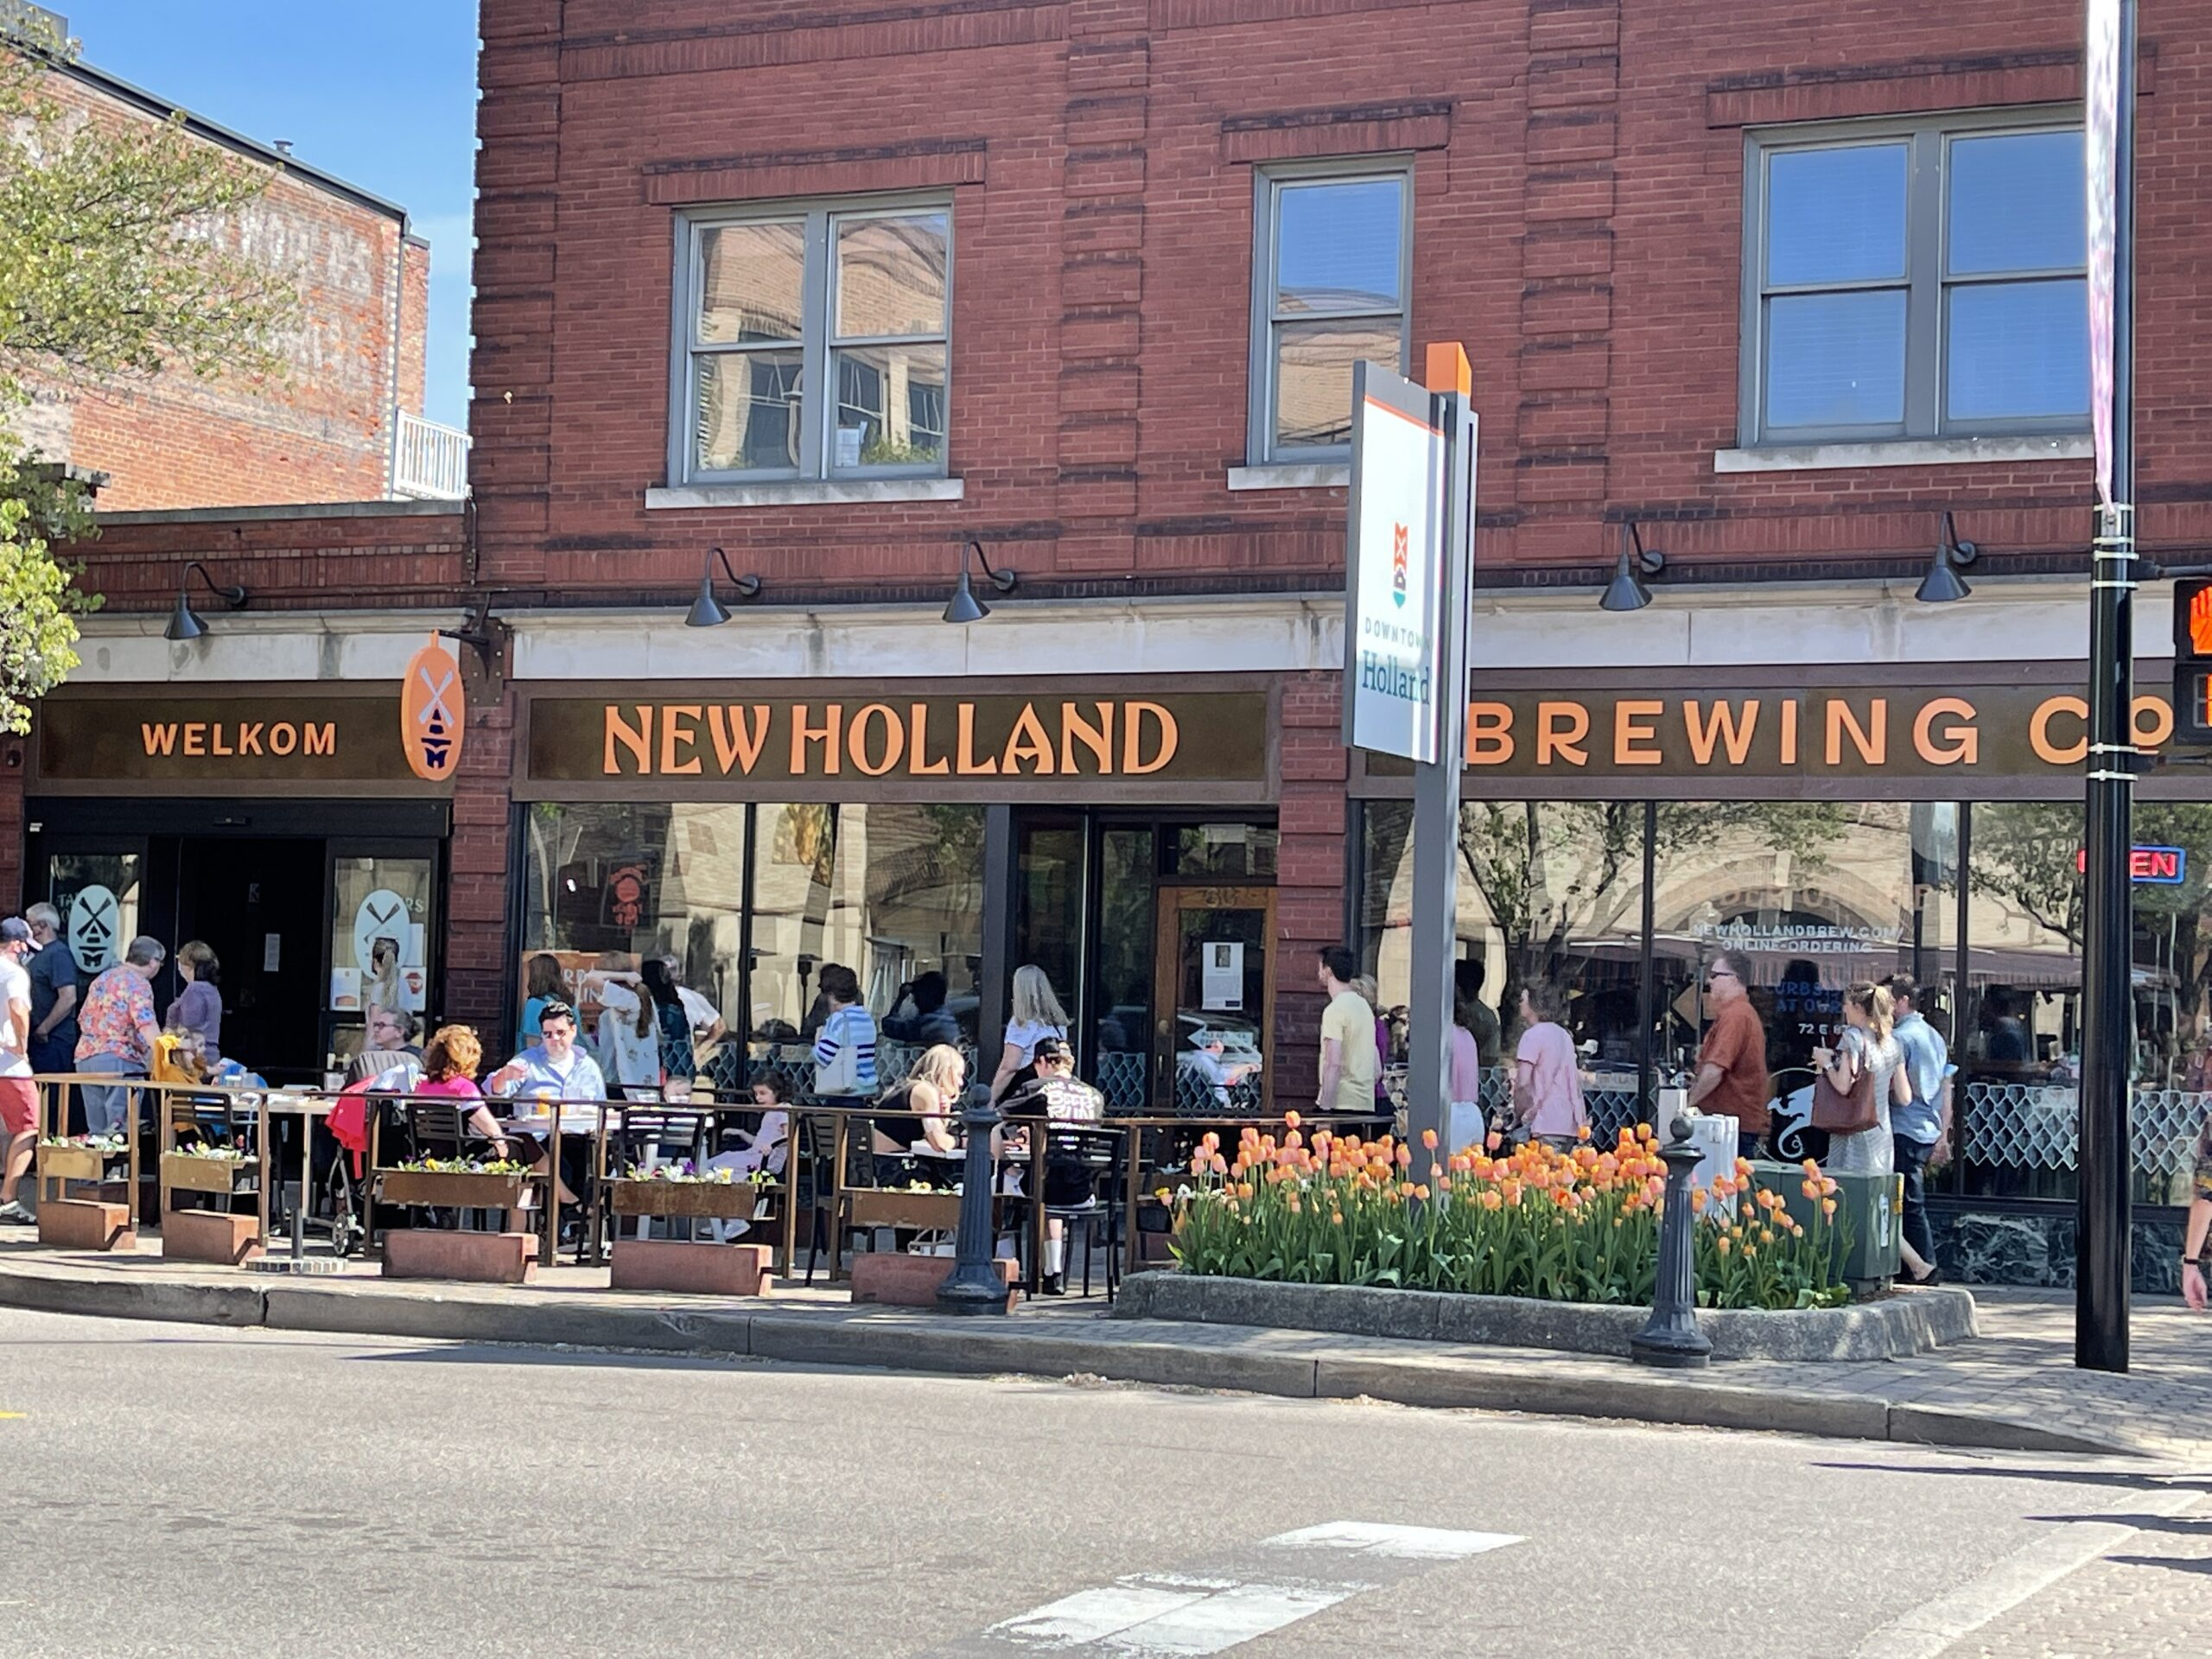 New Holland Brewing Company in downtown Holland MI.